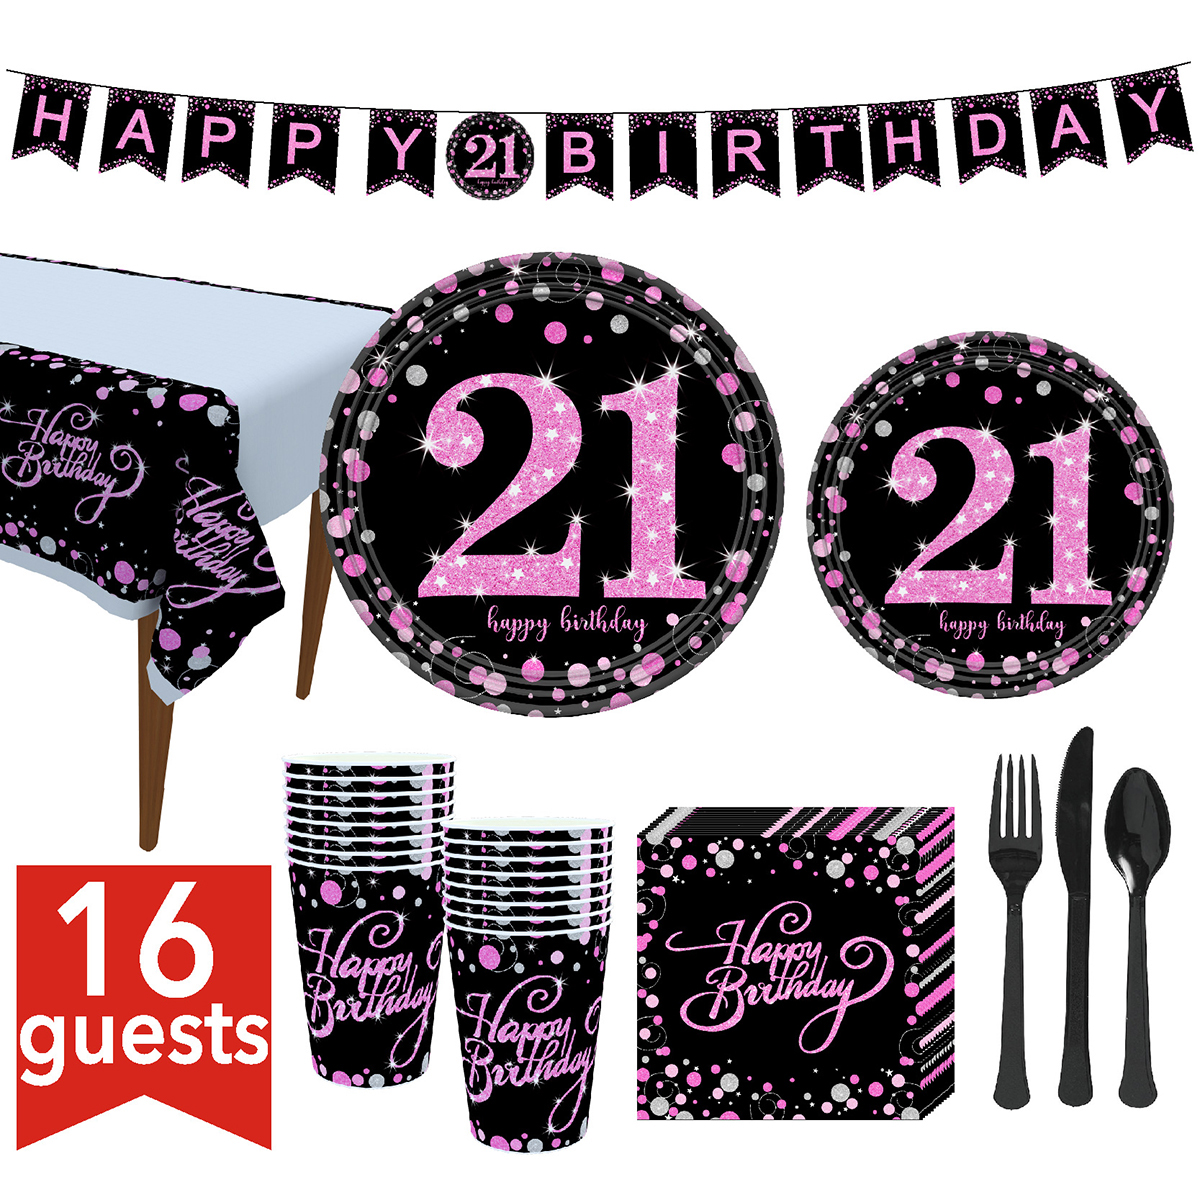 Birthday Party Tableware Kit Birthday Party Supplies Tableware Set Plates Cups Napkins Banner Tablecloth Fork Knife Spoon